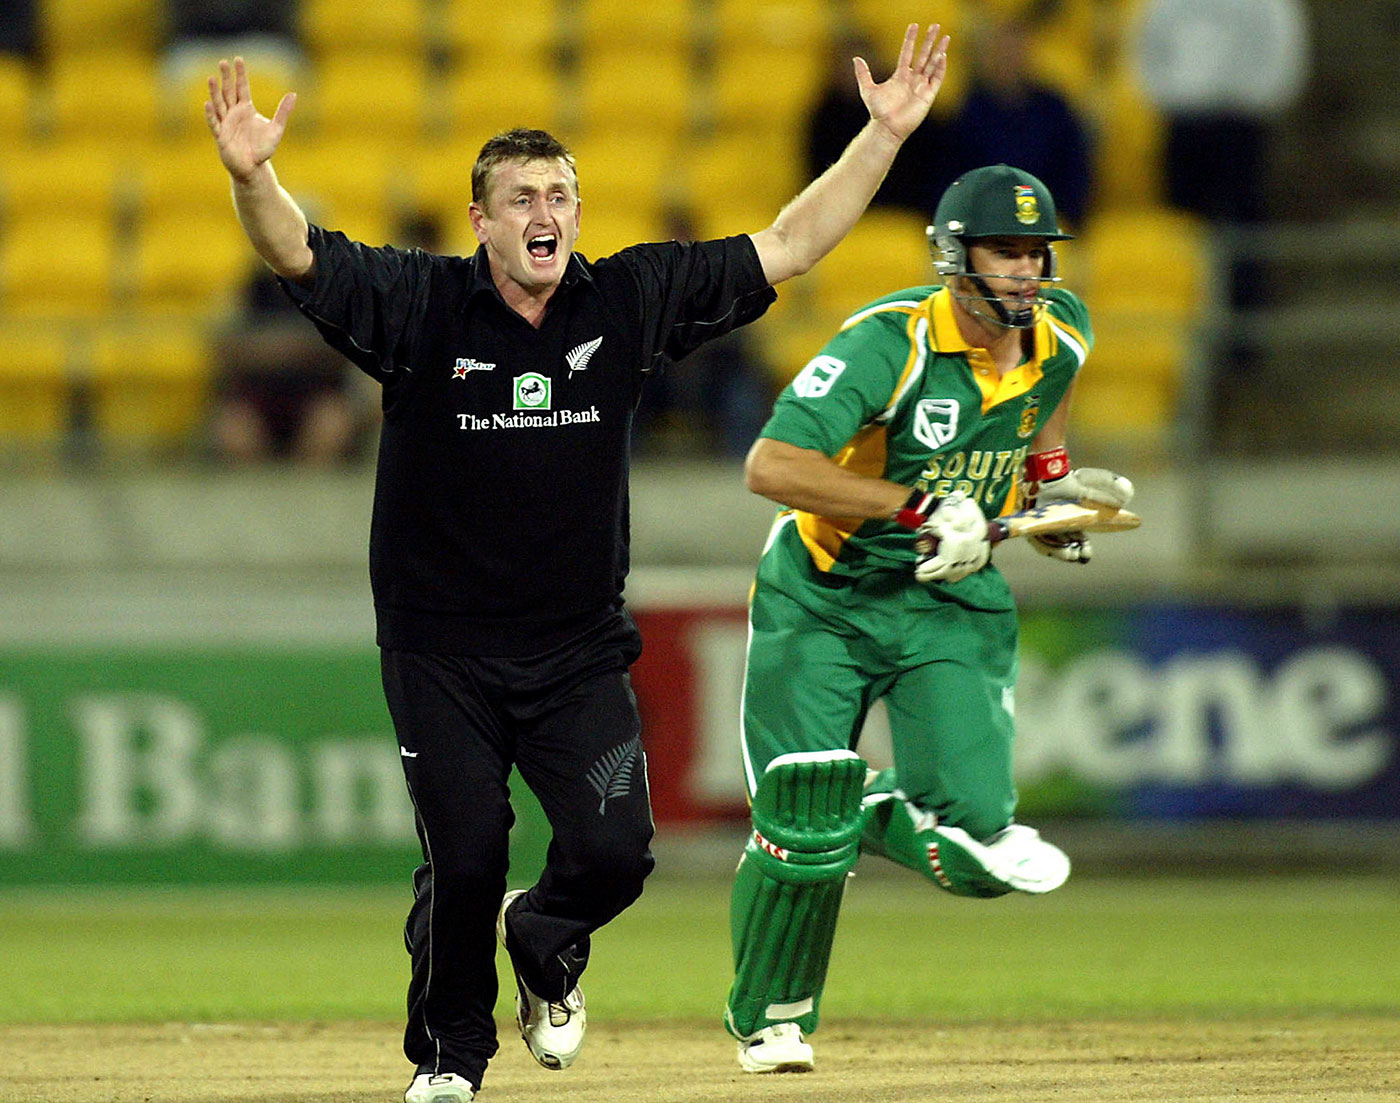 In his first ODI, Morkel bowled a bit and batted a (tiny) bit alongside an array of team-mates with a  similar job profile